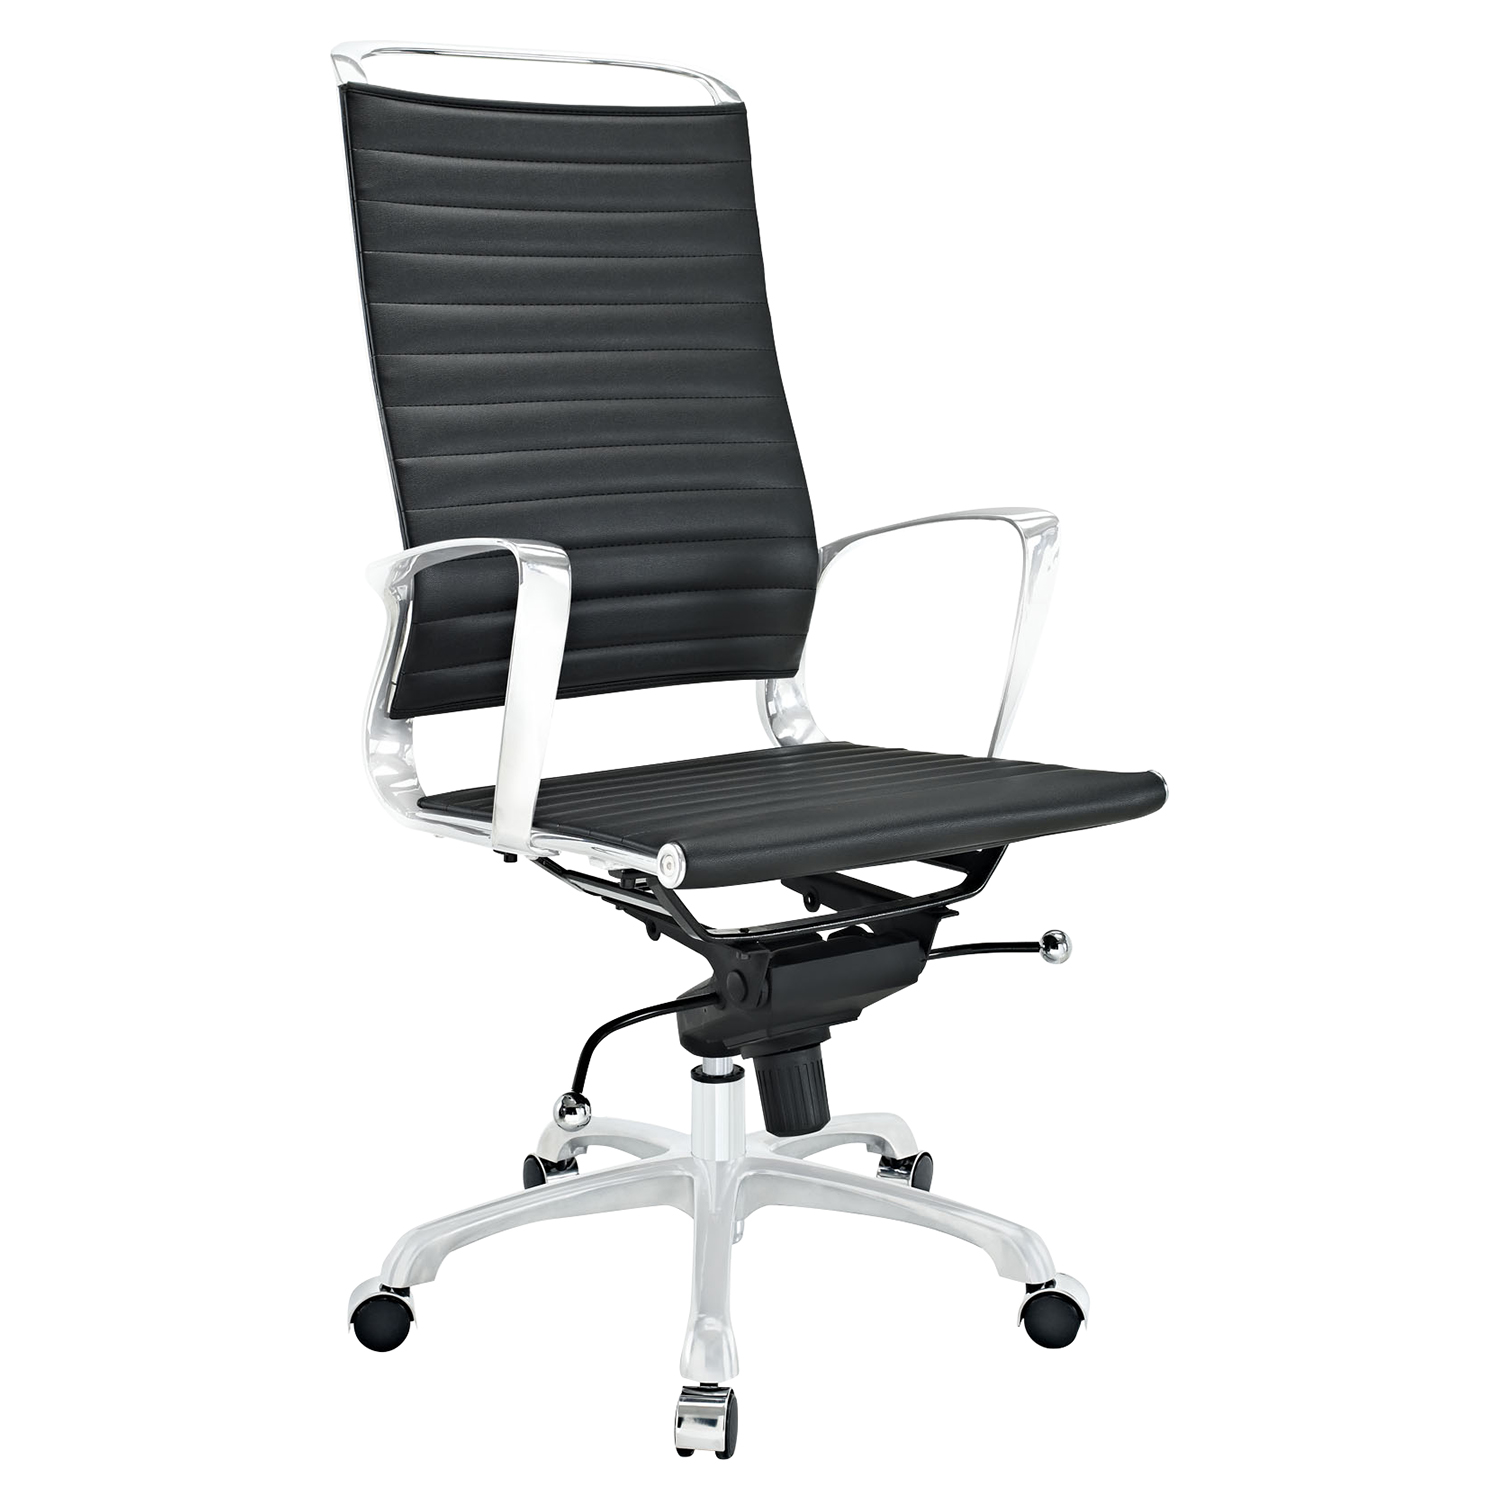 Tempo High Back Office Chair - Adjustable Height, Swivel, Armrest - EEI-1025